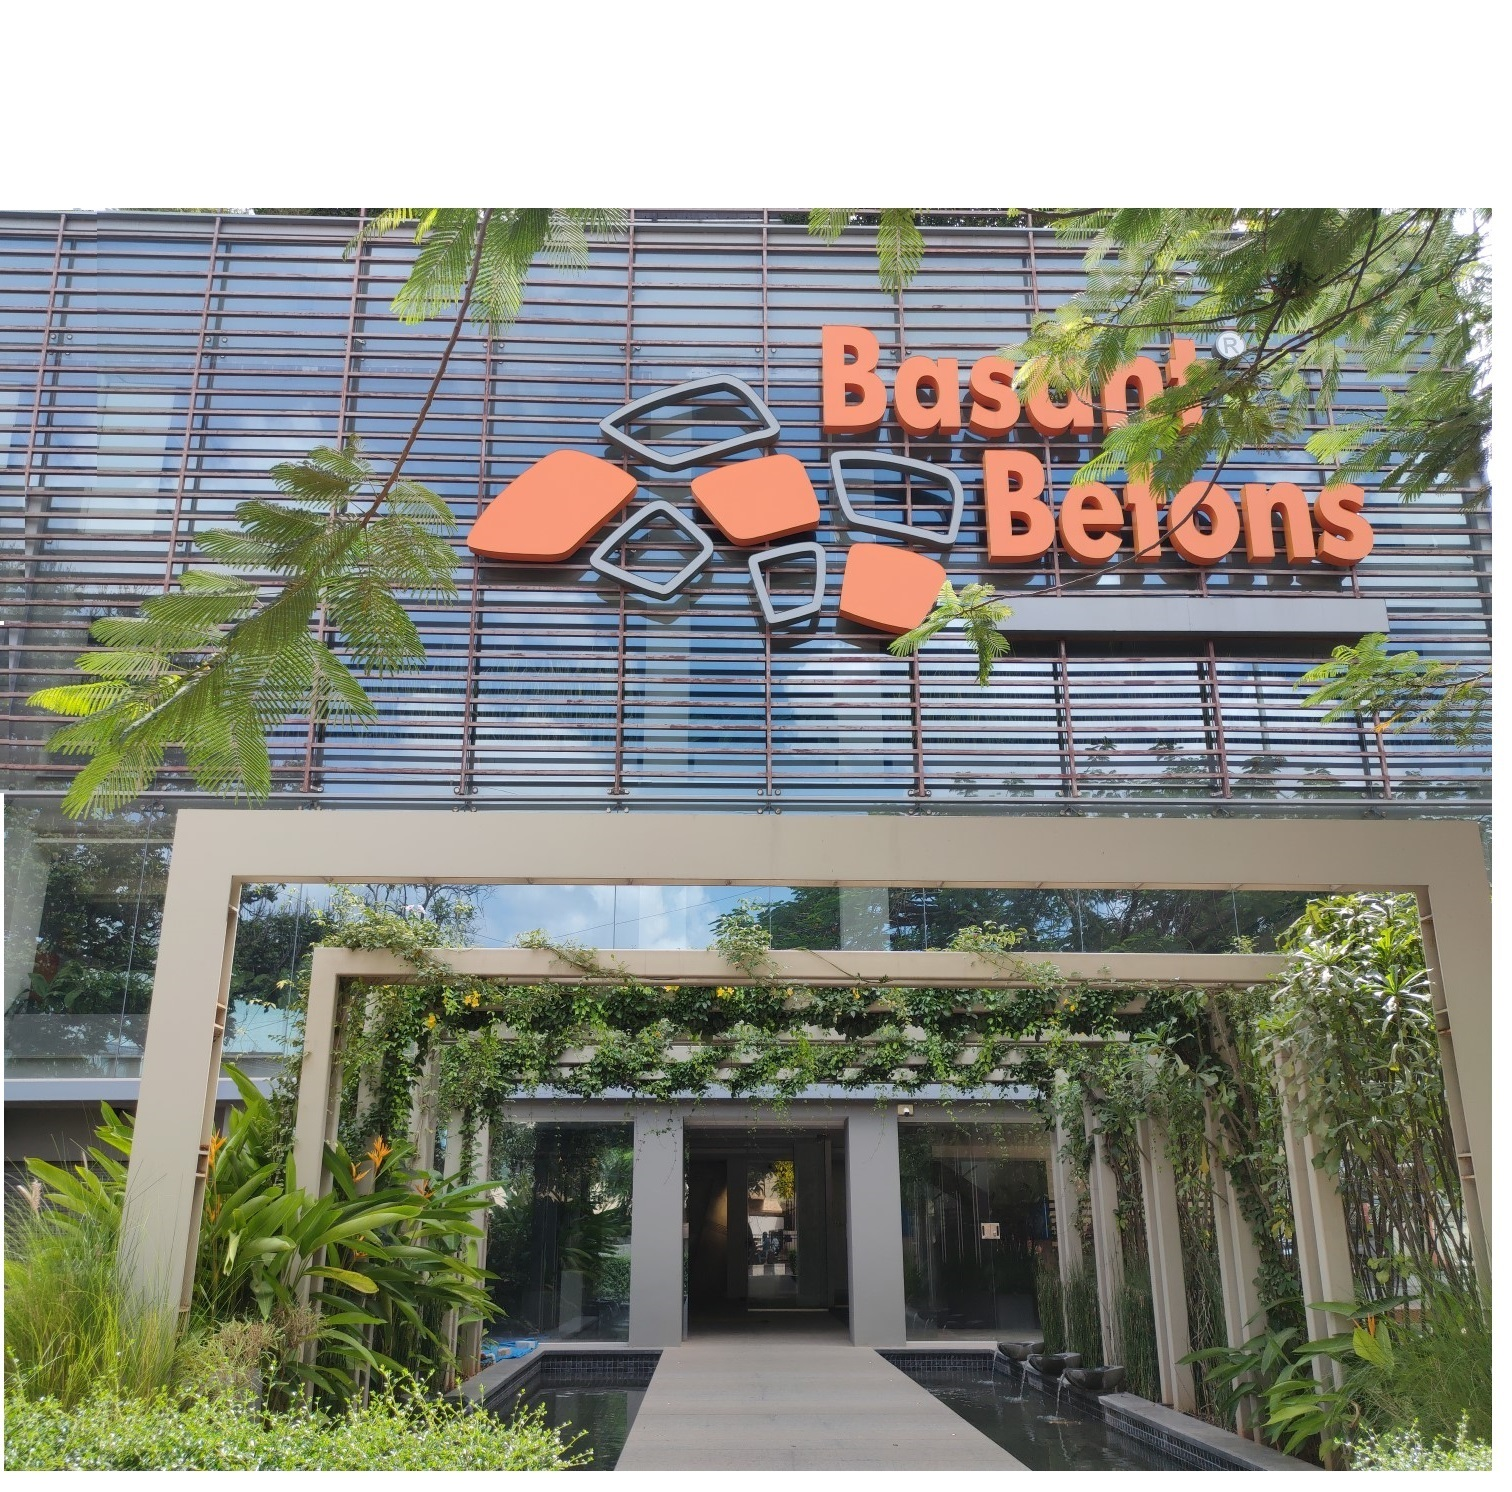 About Basant Betons